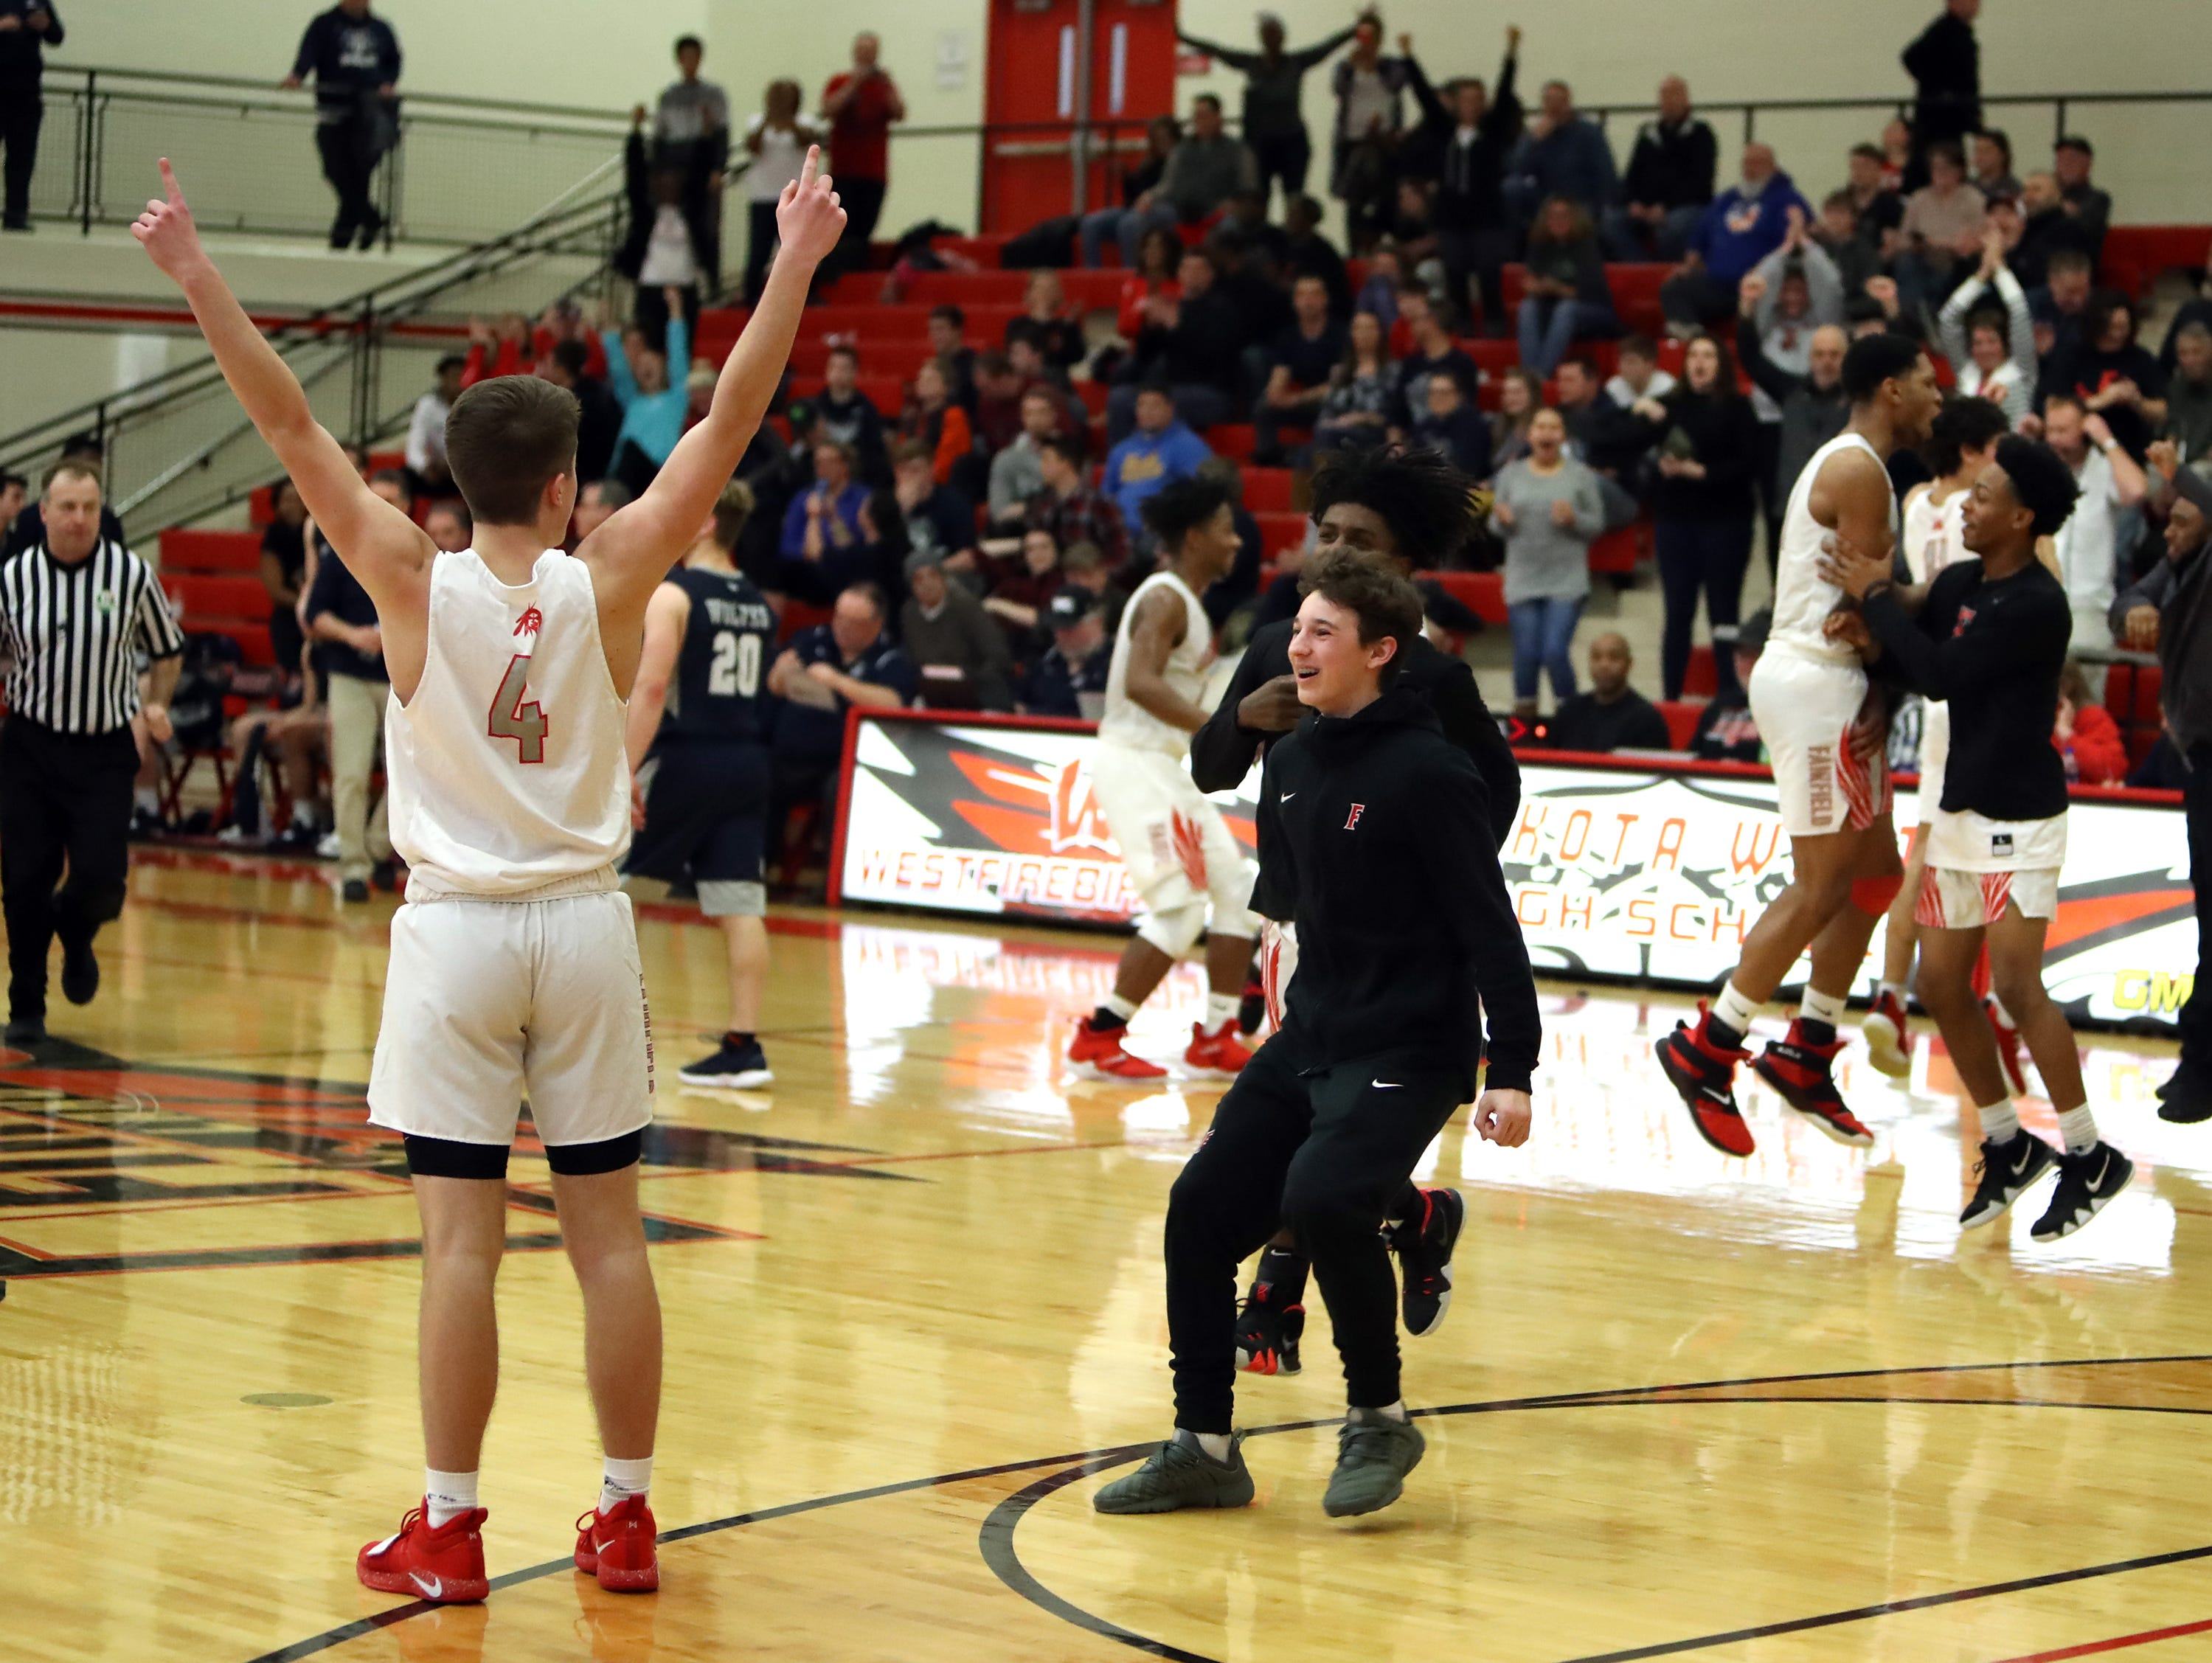 Fairfield guard Colin Singer raises his hands in triumph after knocking down his free throws to give the Indians the final lead. Fairfield defeated West Clermont 49-46.